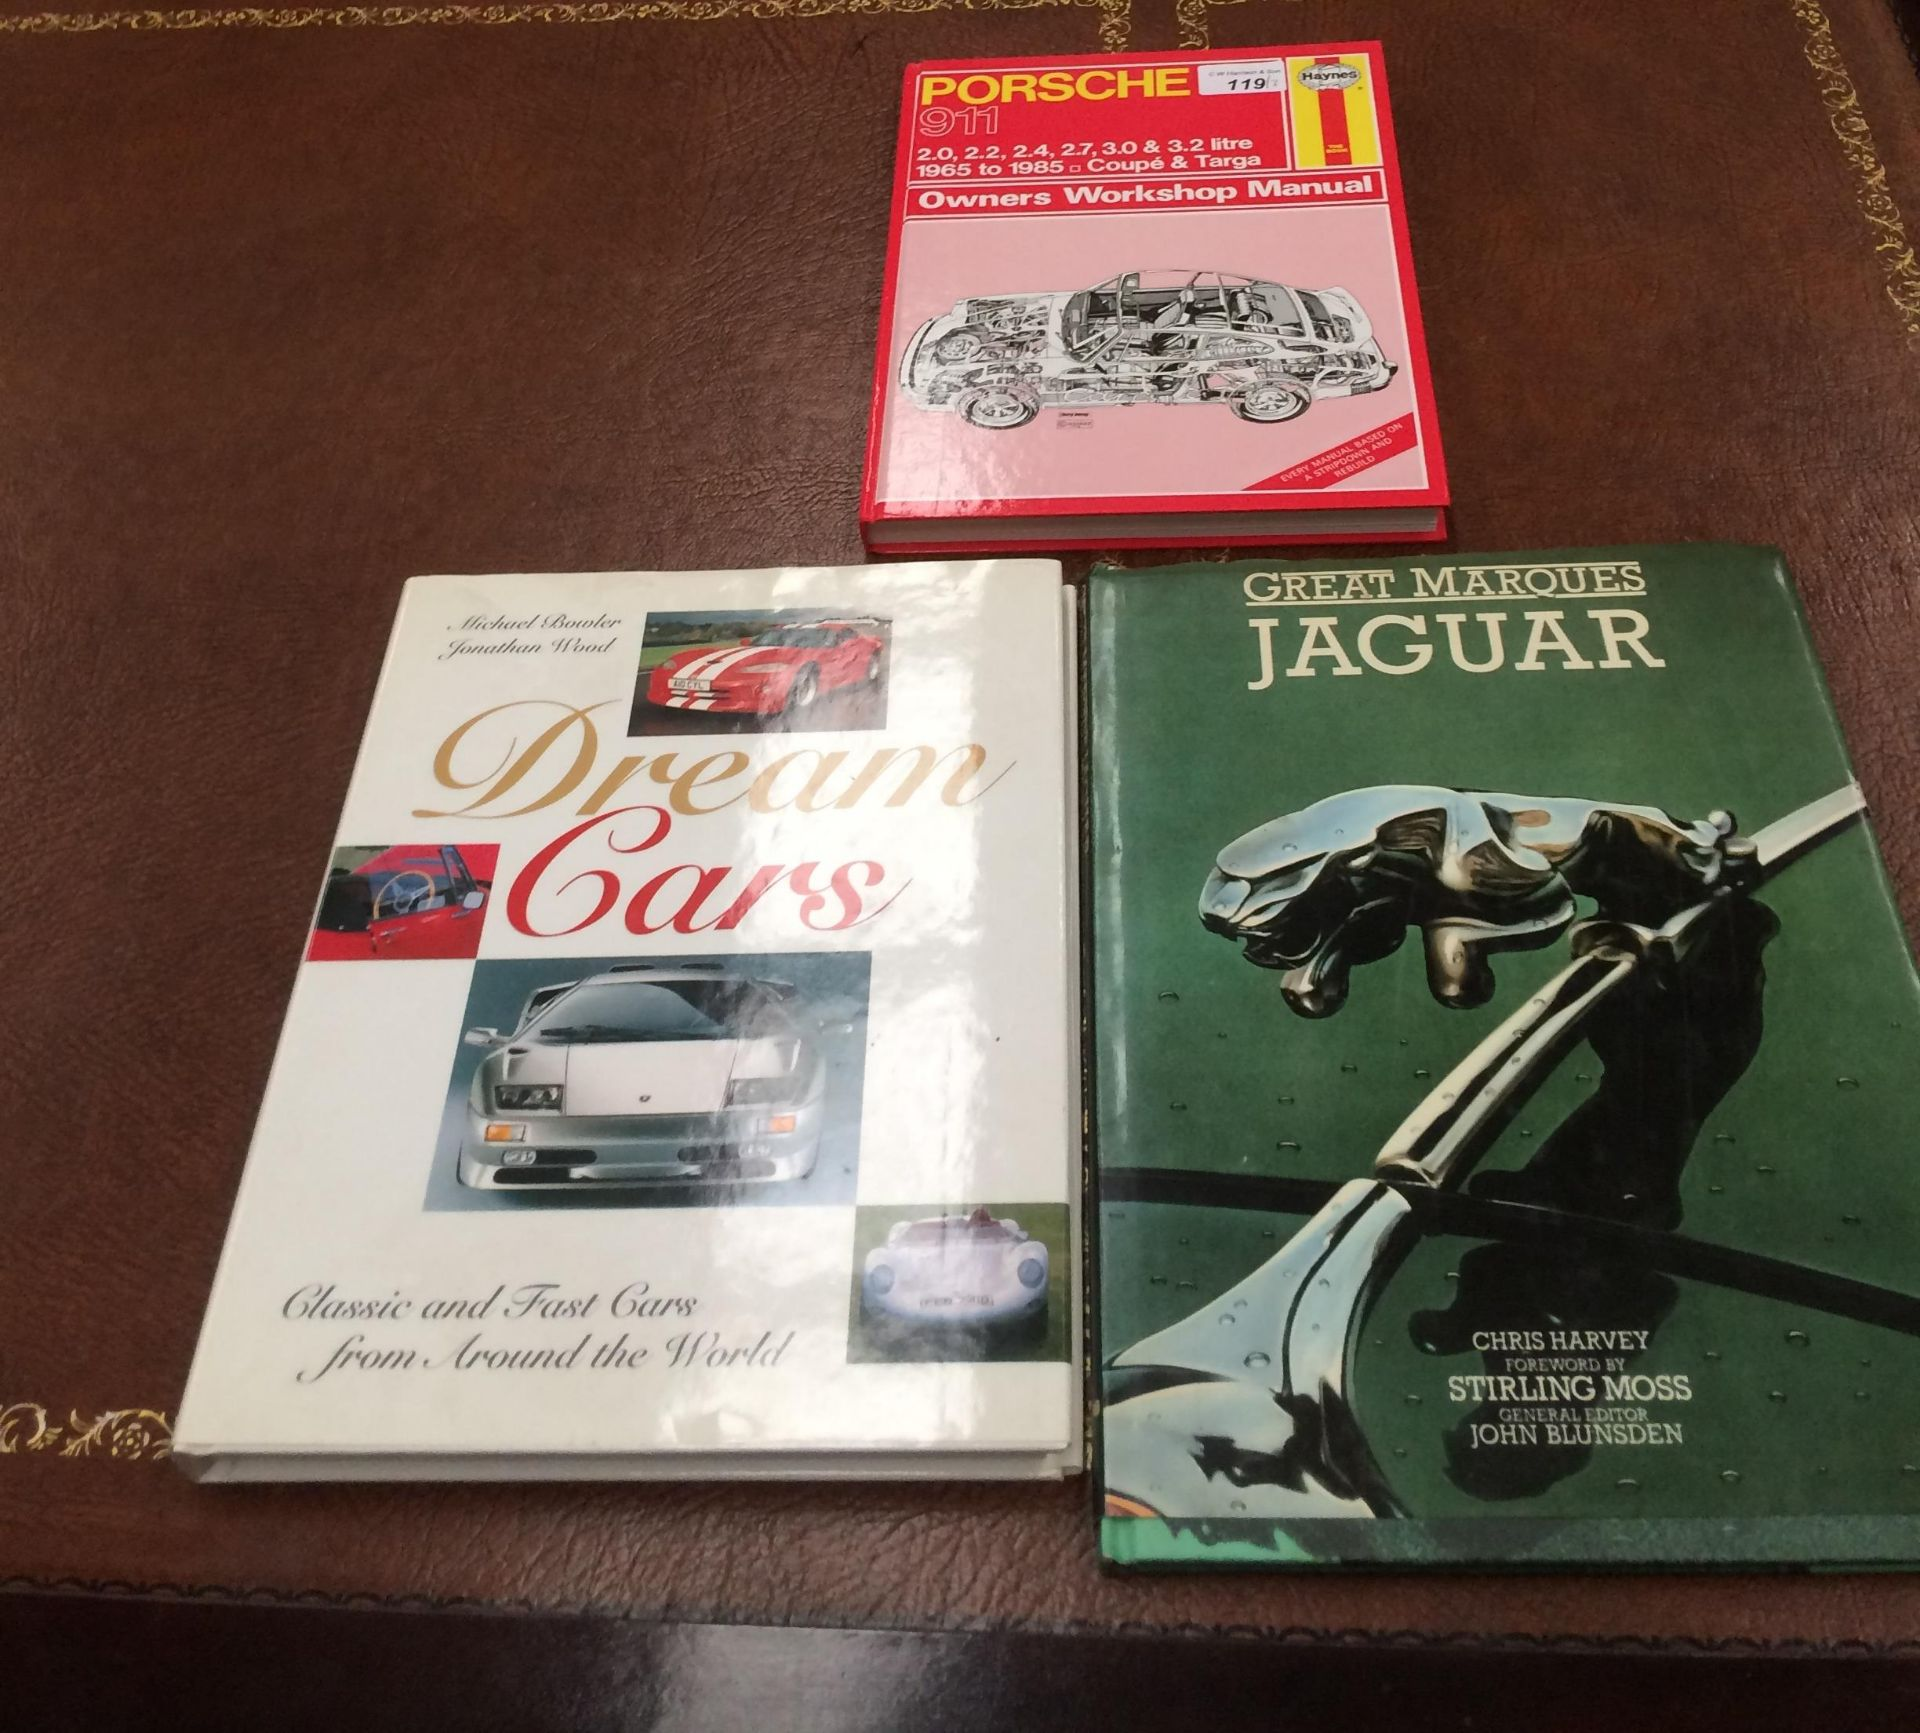 Lotto 119 - A Haynes workshop manual for a Porsche 911 1965-1985 Coupe and Targa and two other books on classic